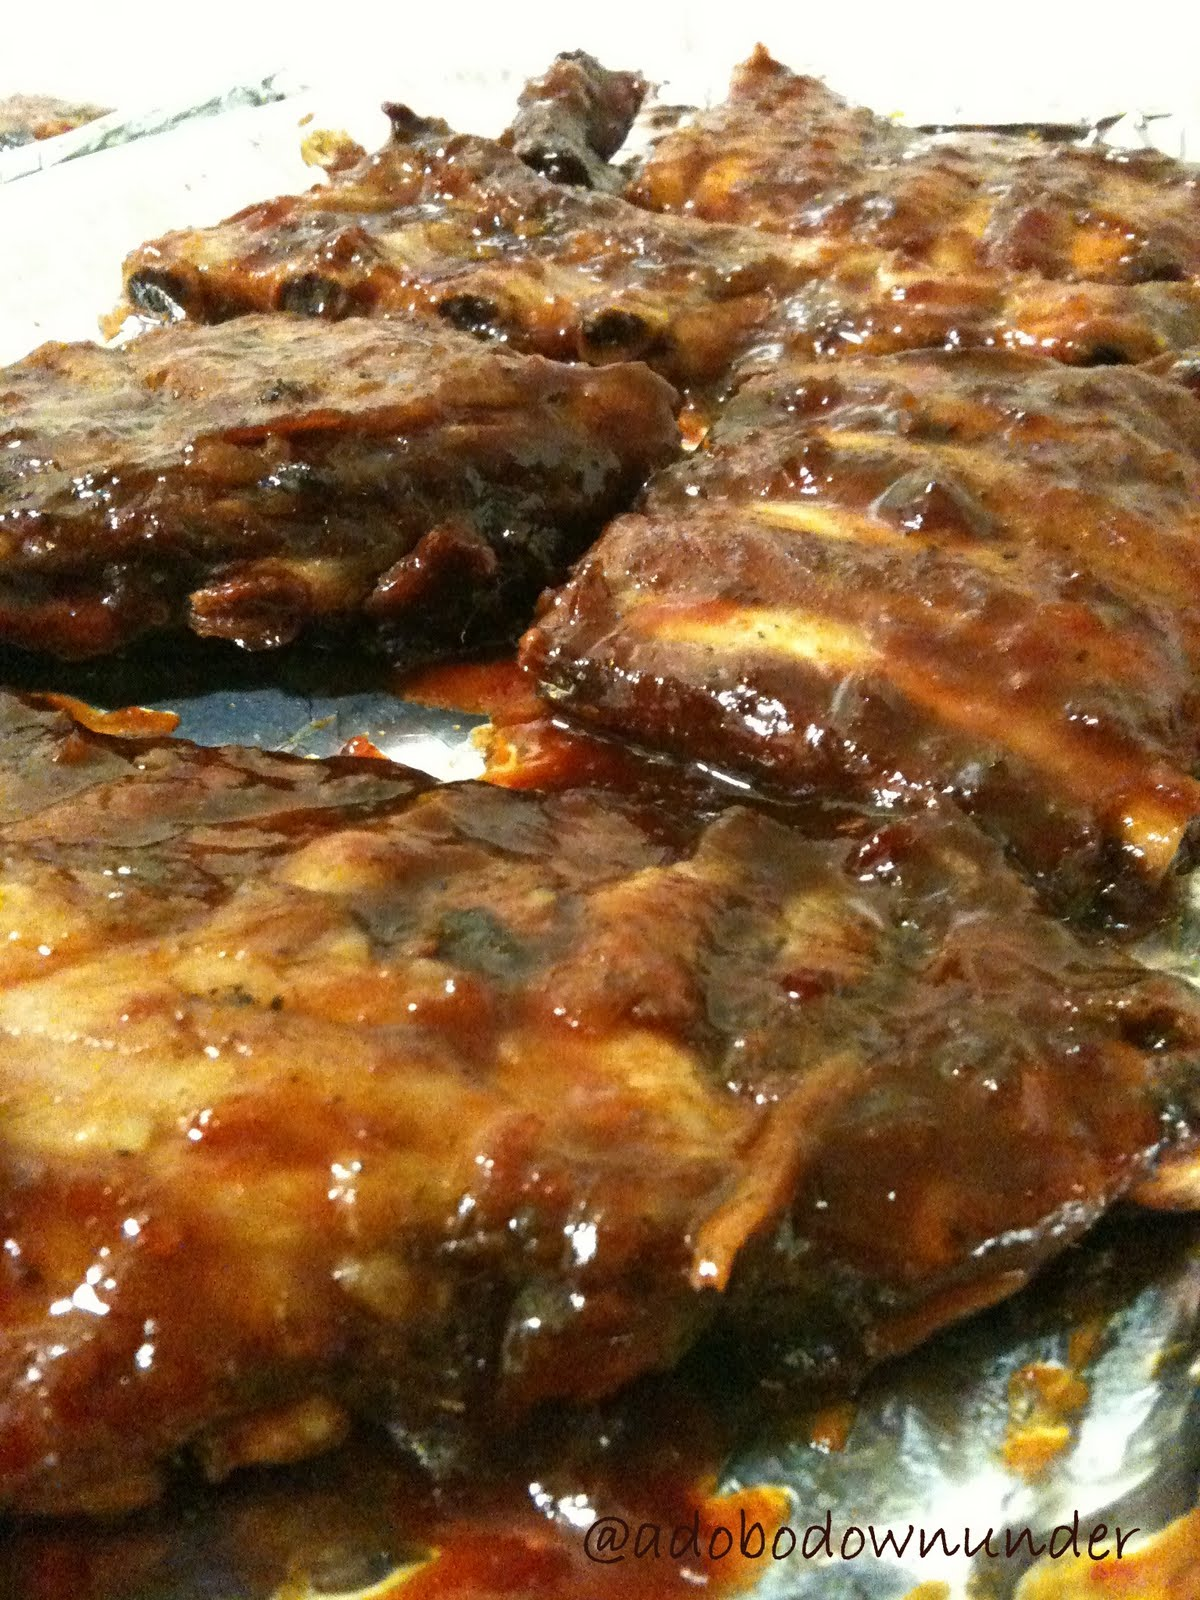 adobo down under: Baby back ribs in ginger-orange glaze